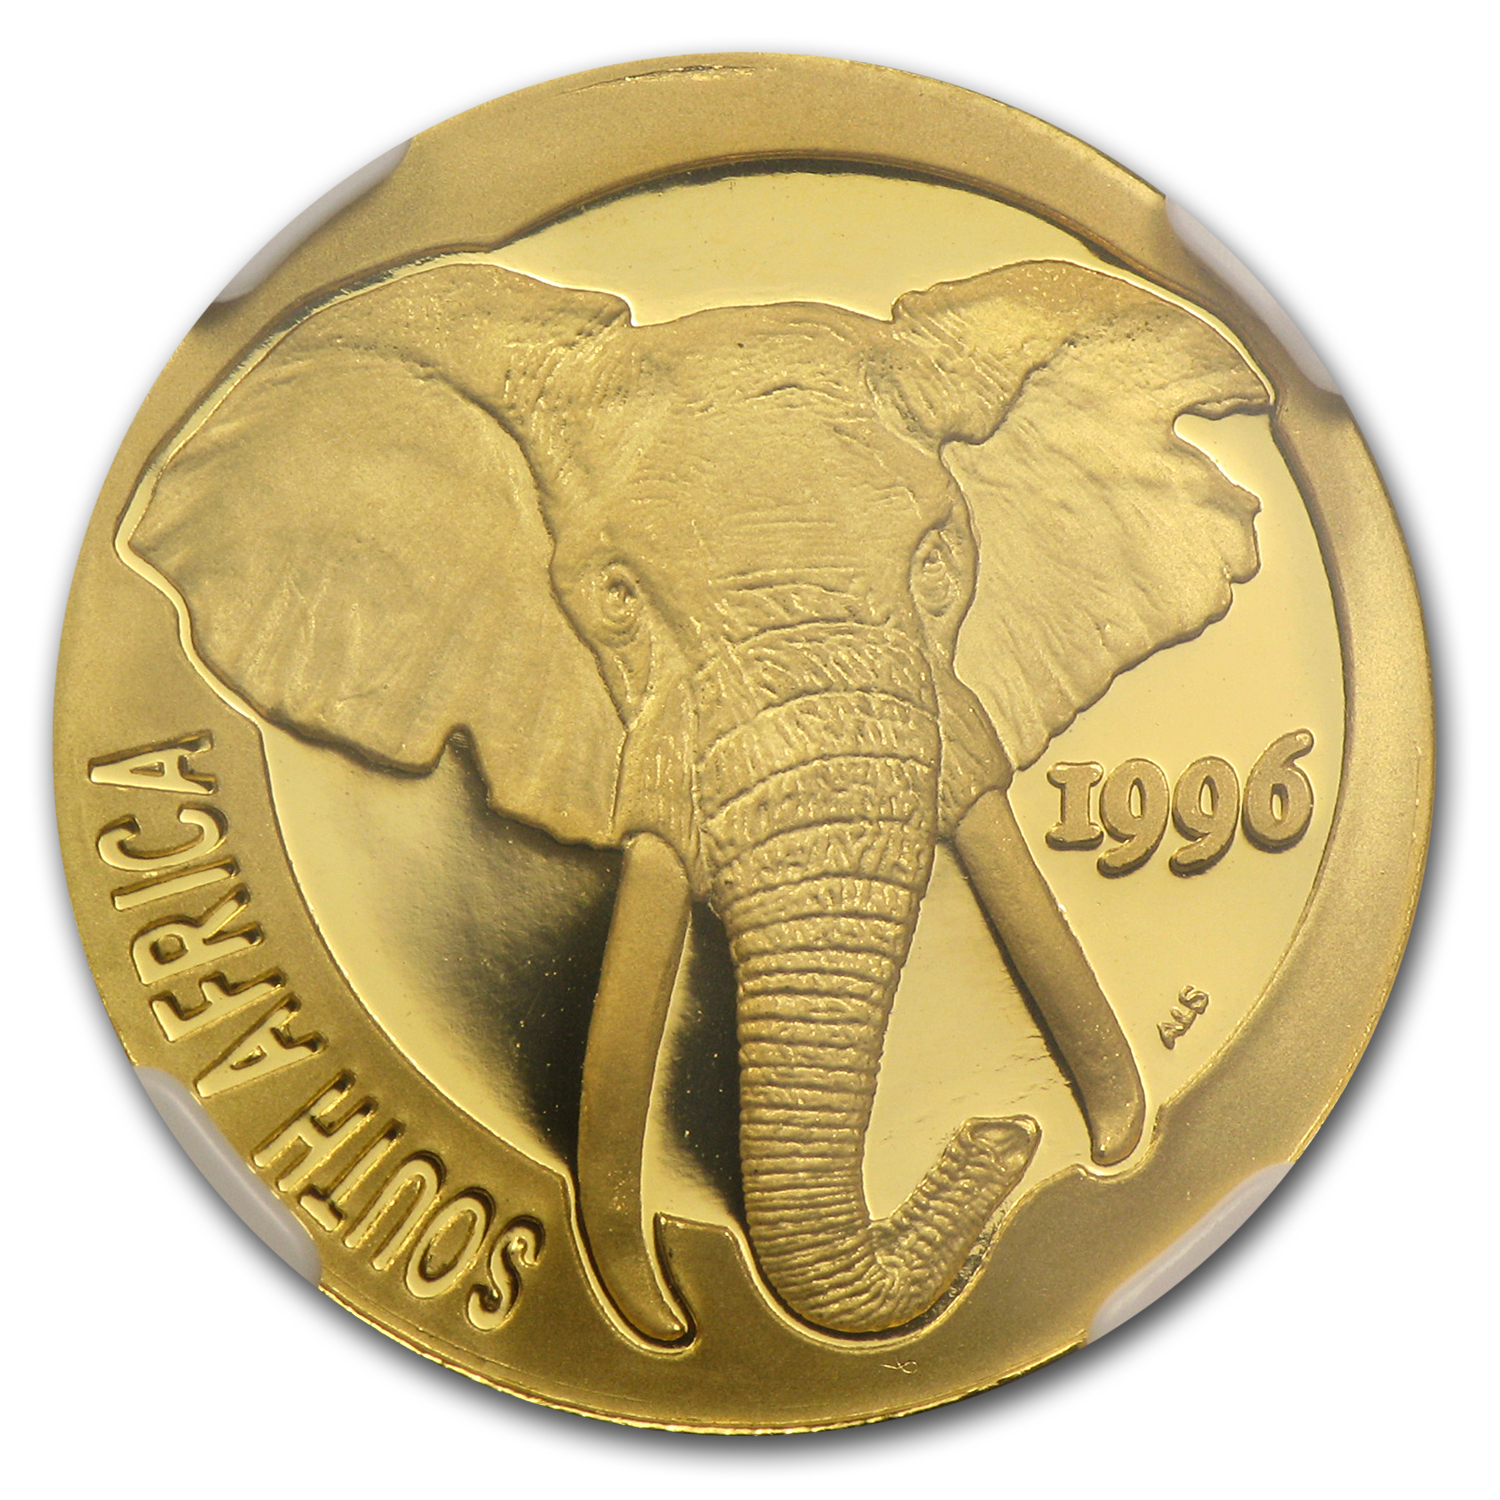 1996 South Africa 1/4 oz Gold Natura Elephant PF-69 NGC